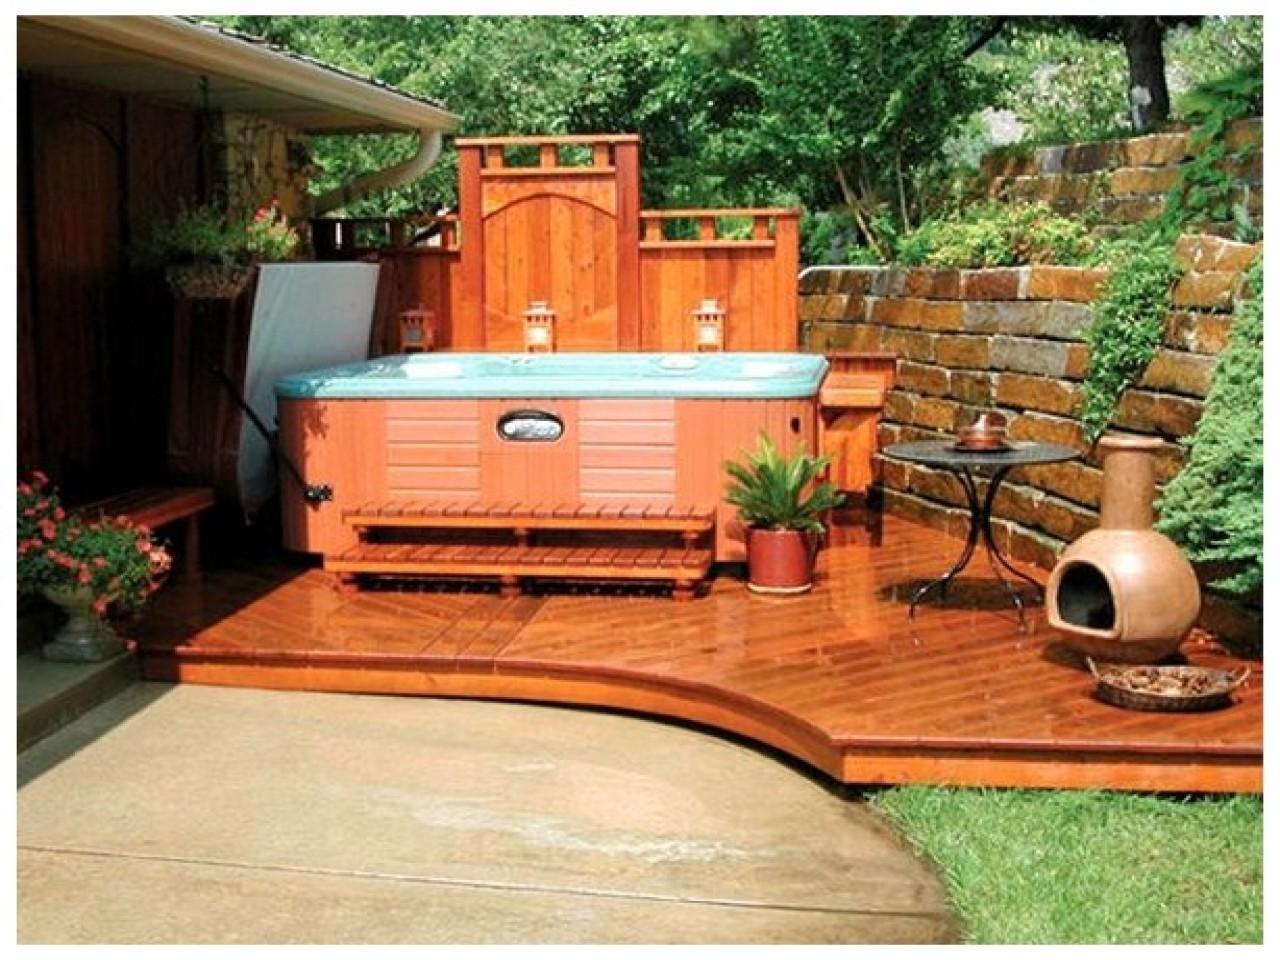 Home Design Ideas Cool Backyard Hot Tub Designs